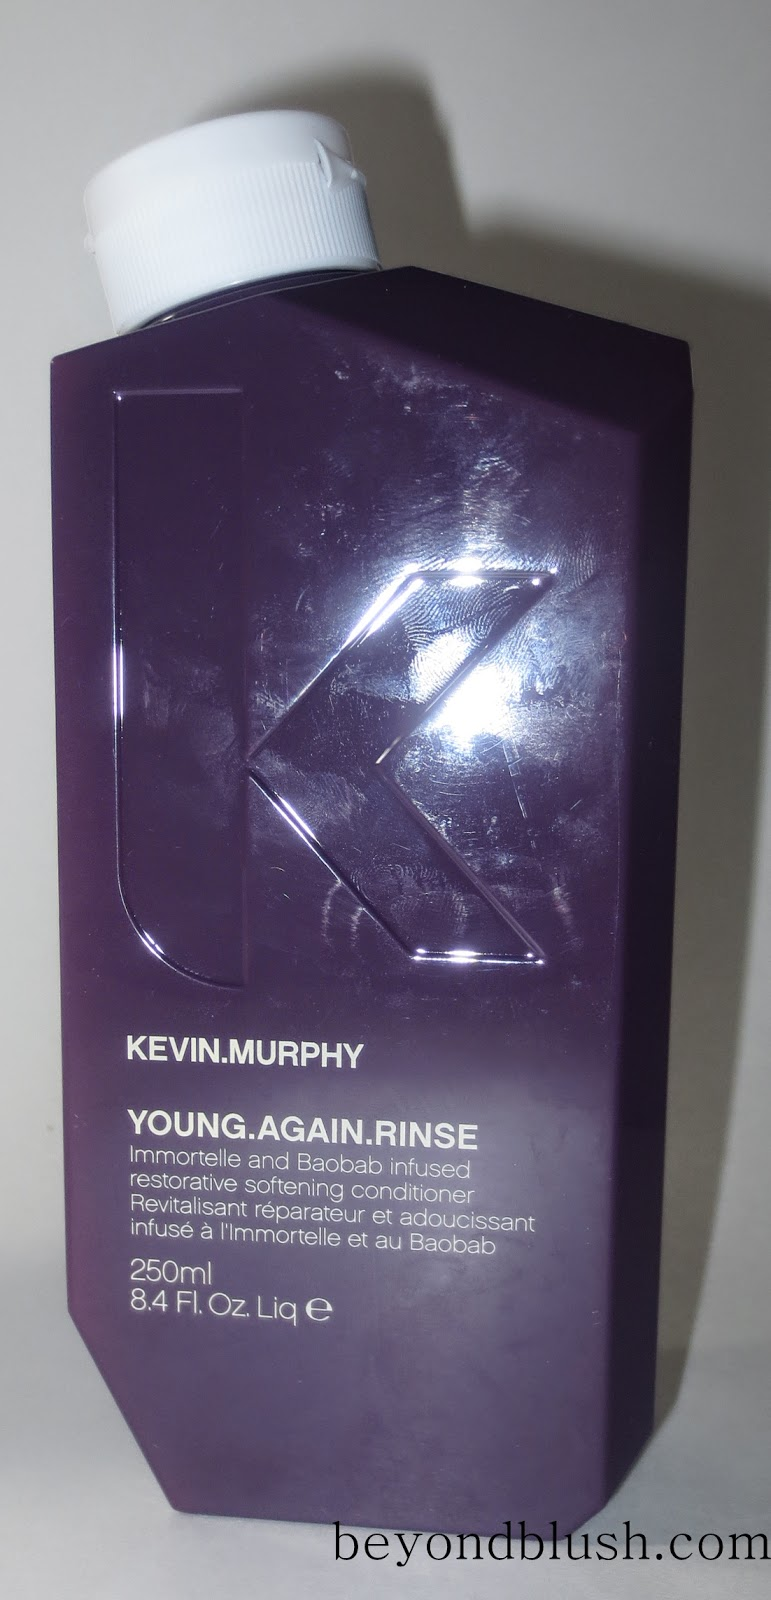 KEVIN.MURPHY Young.Again Rinse